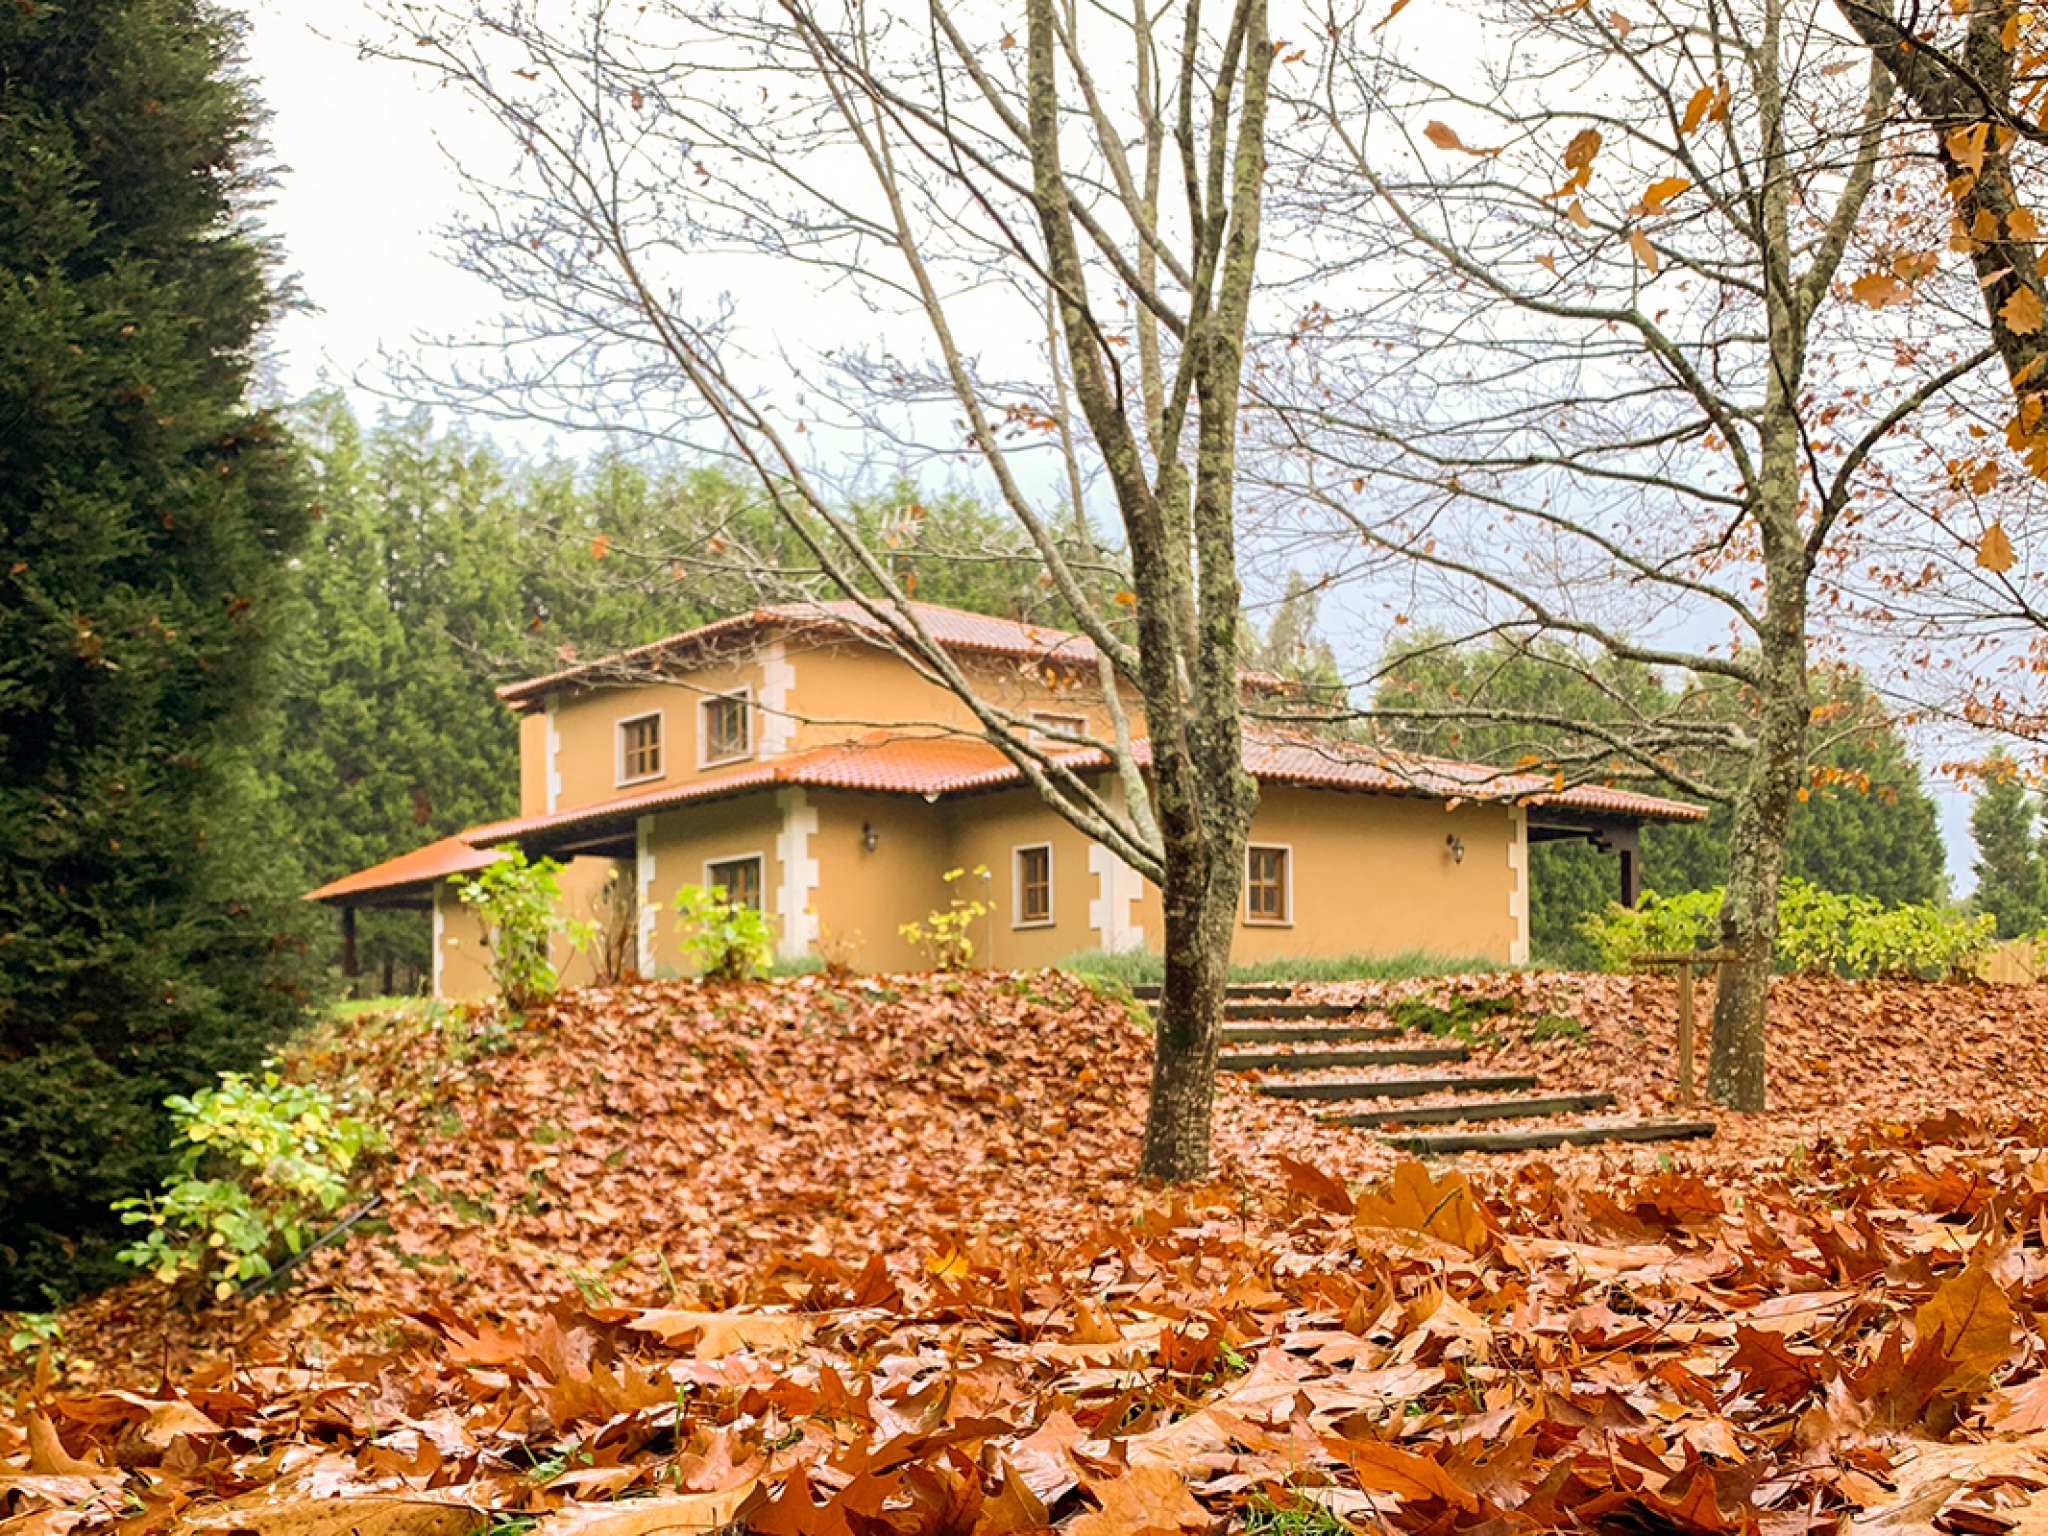 Our small Galician paradise turns brown: welcome autumn to Vila sen Vento!